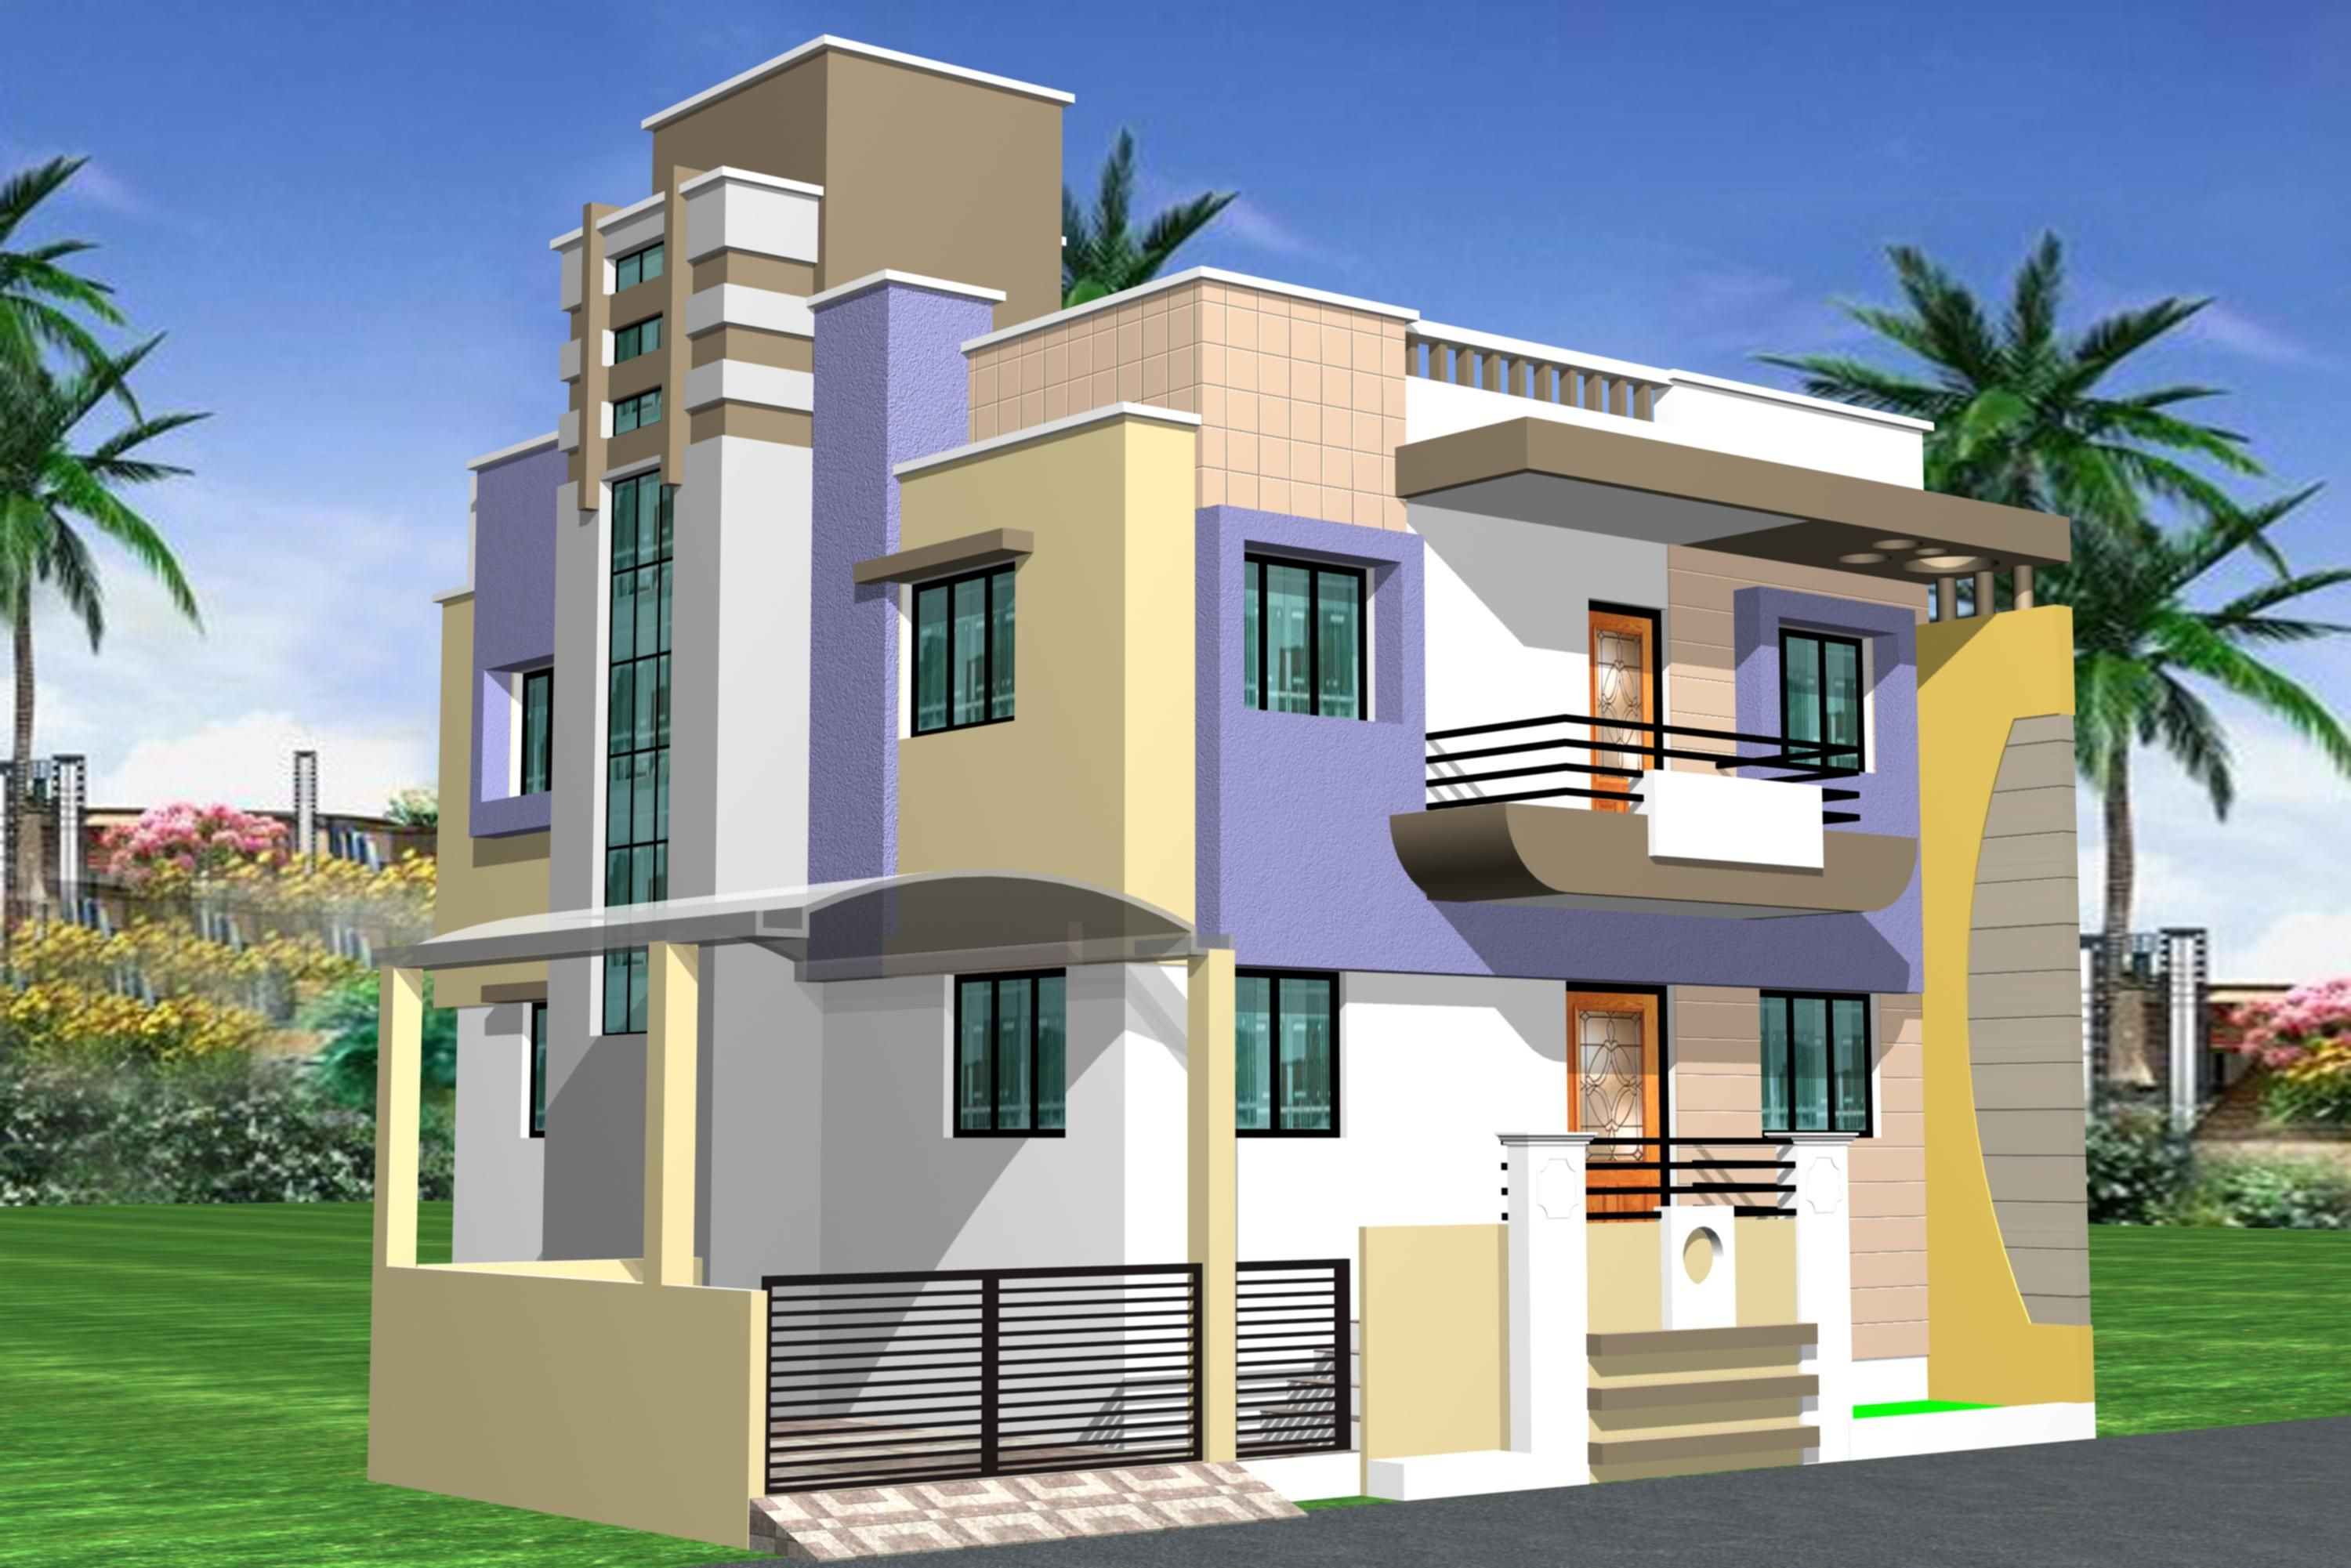 Front Elevation Designs For Duplex Houses : House front elevation designs google search